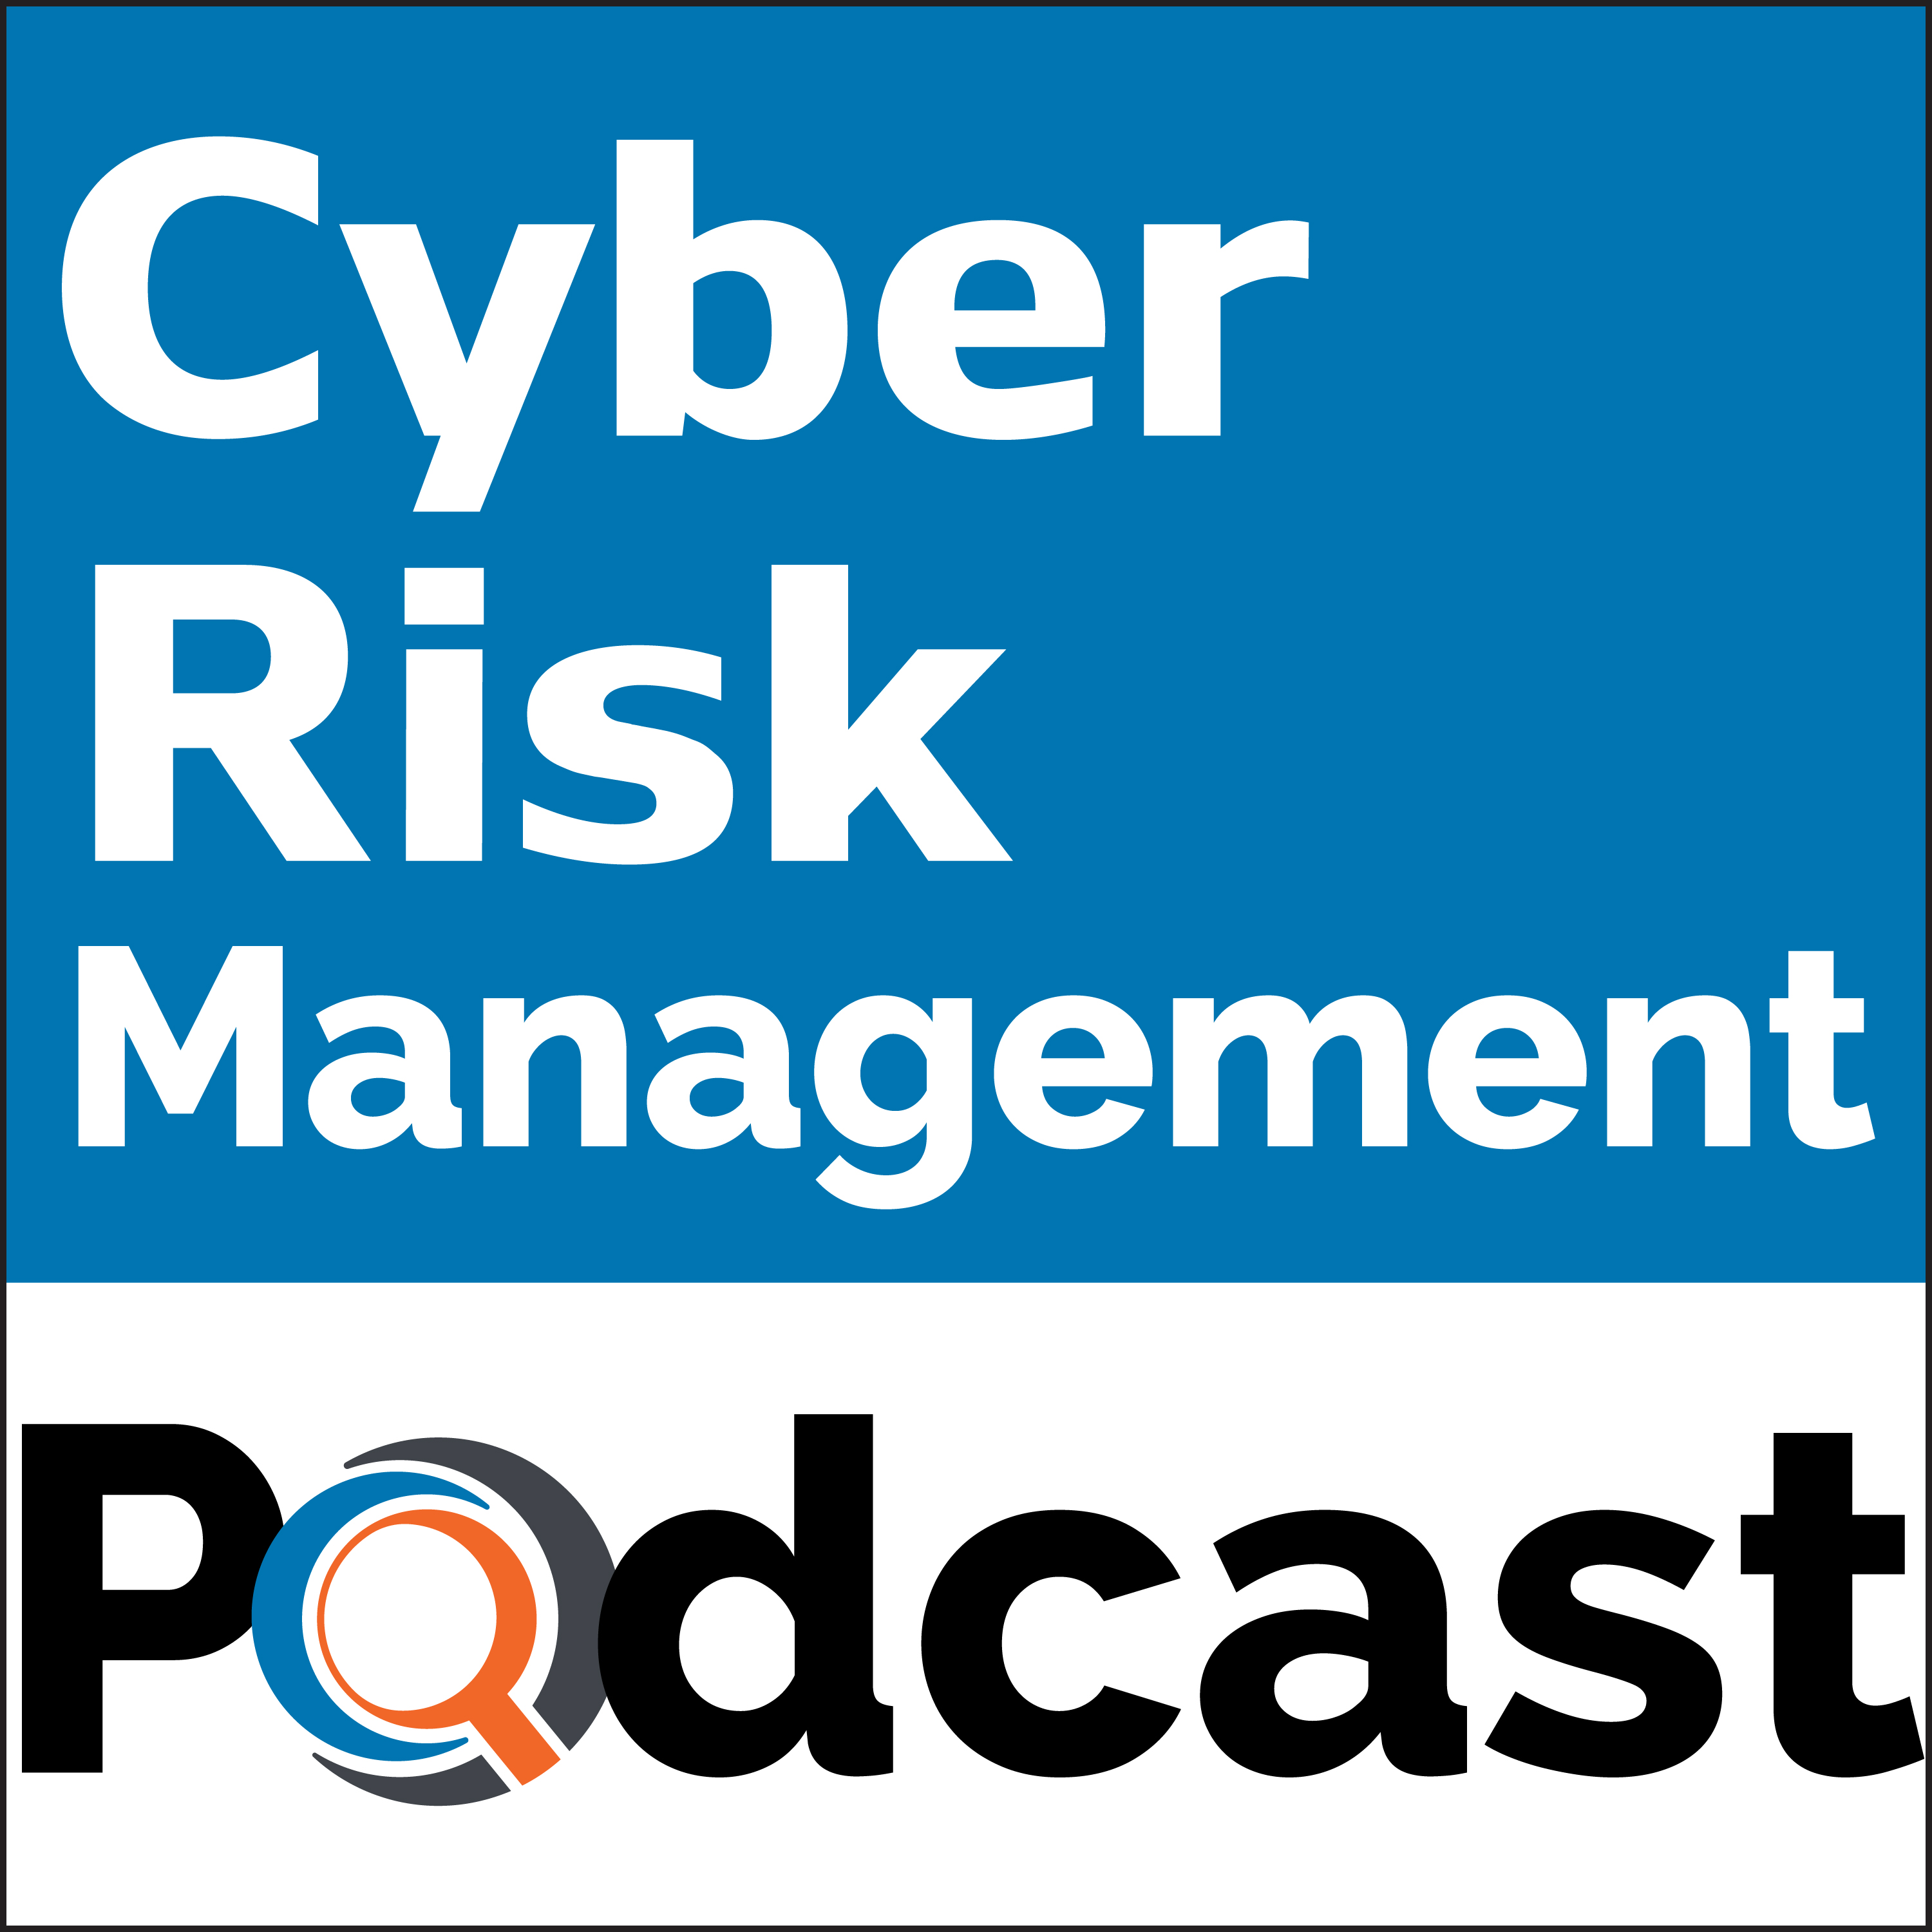 Introducing Cyber Risk Management Podcast